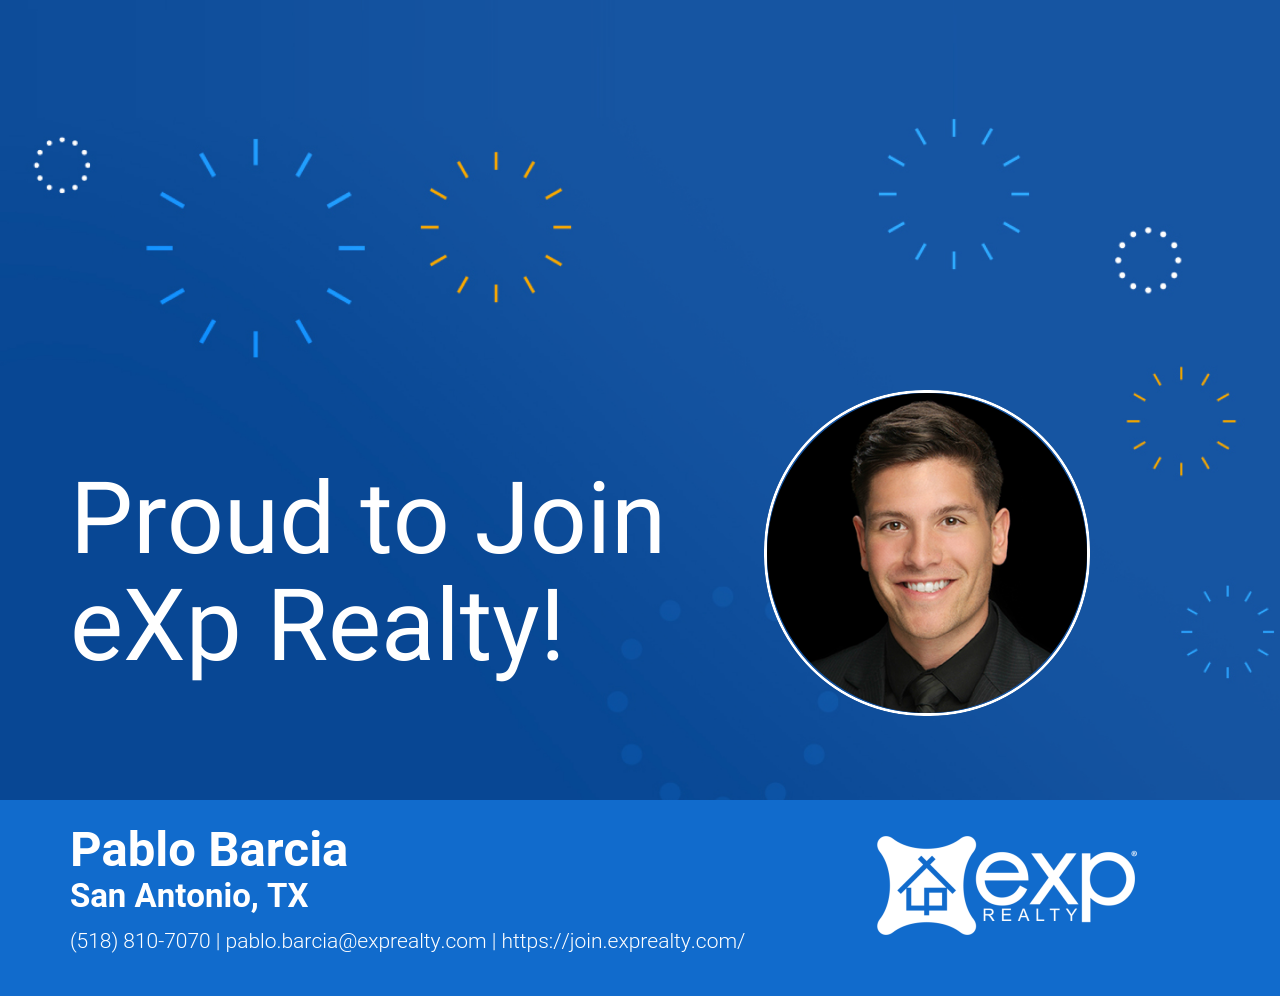 eXp Realty Welcomes Pablo Barcia!